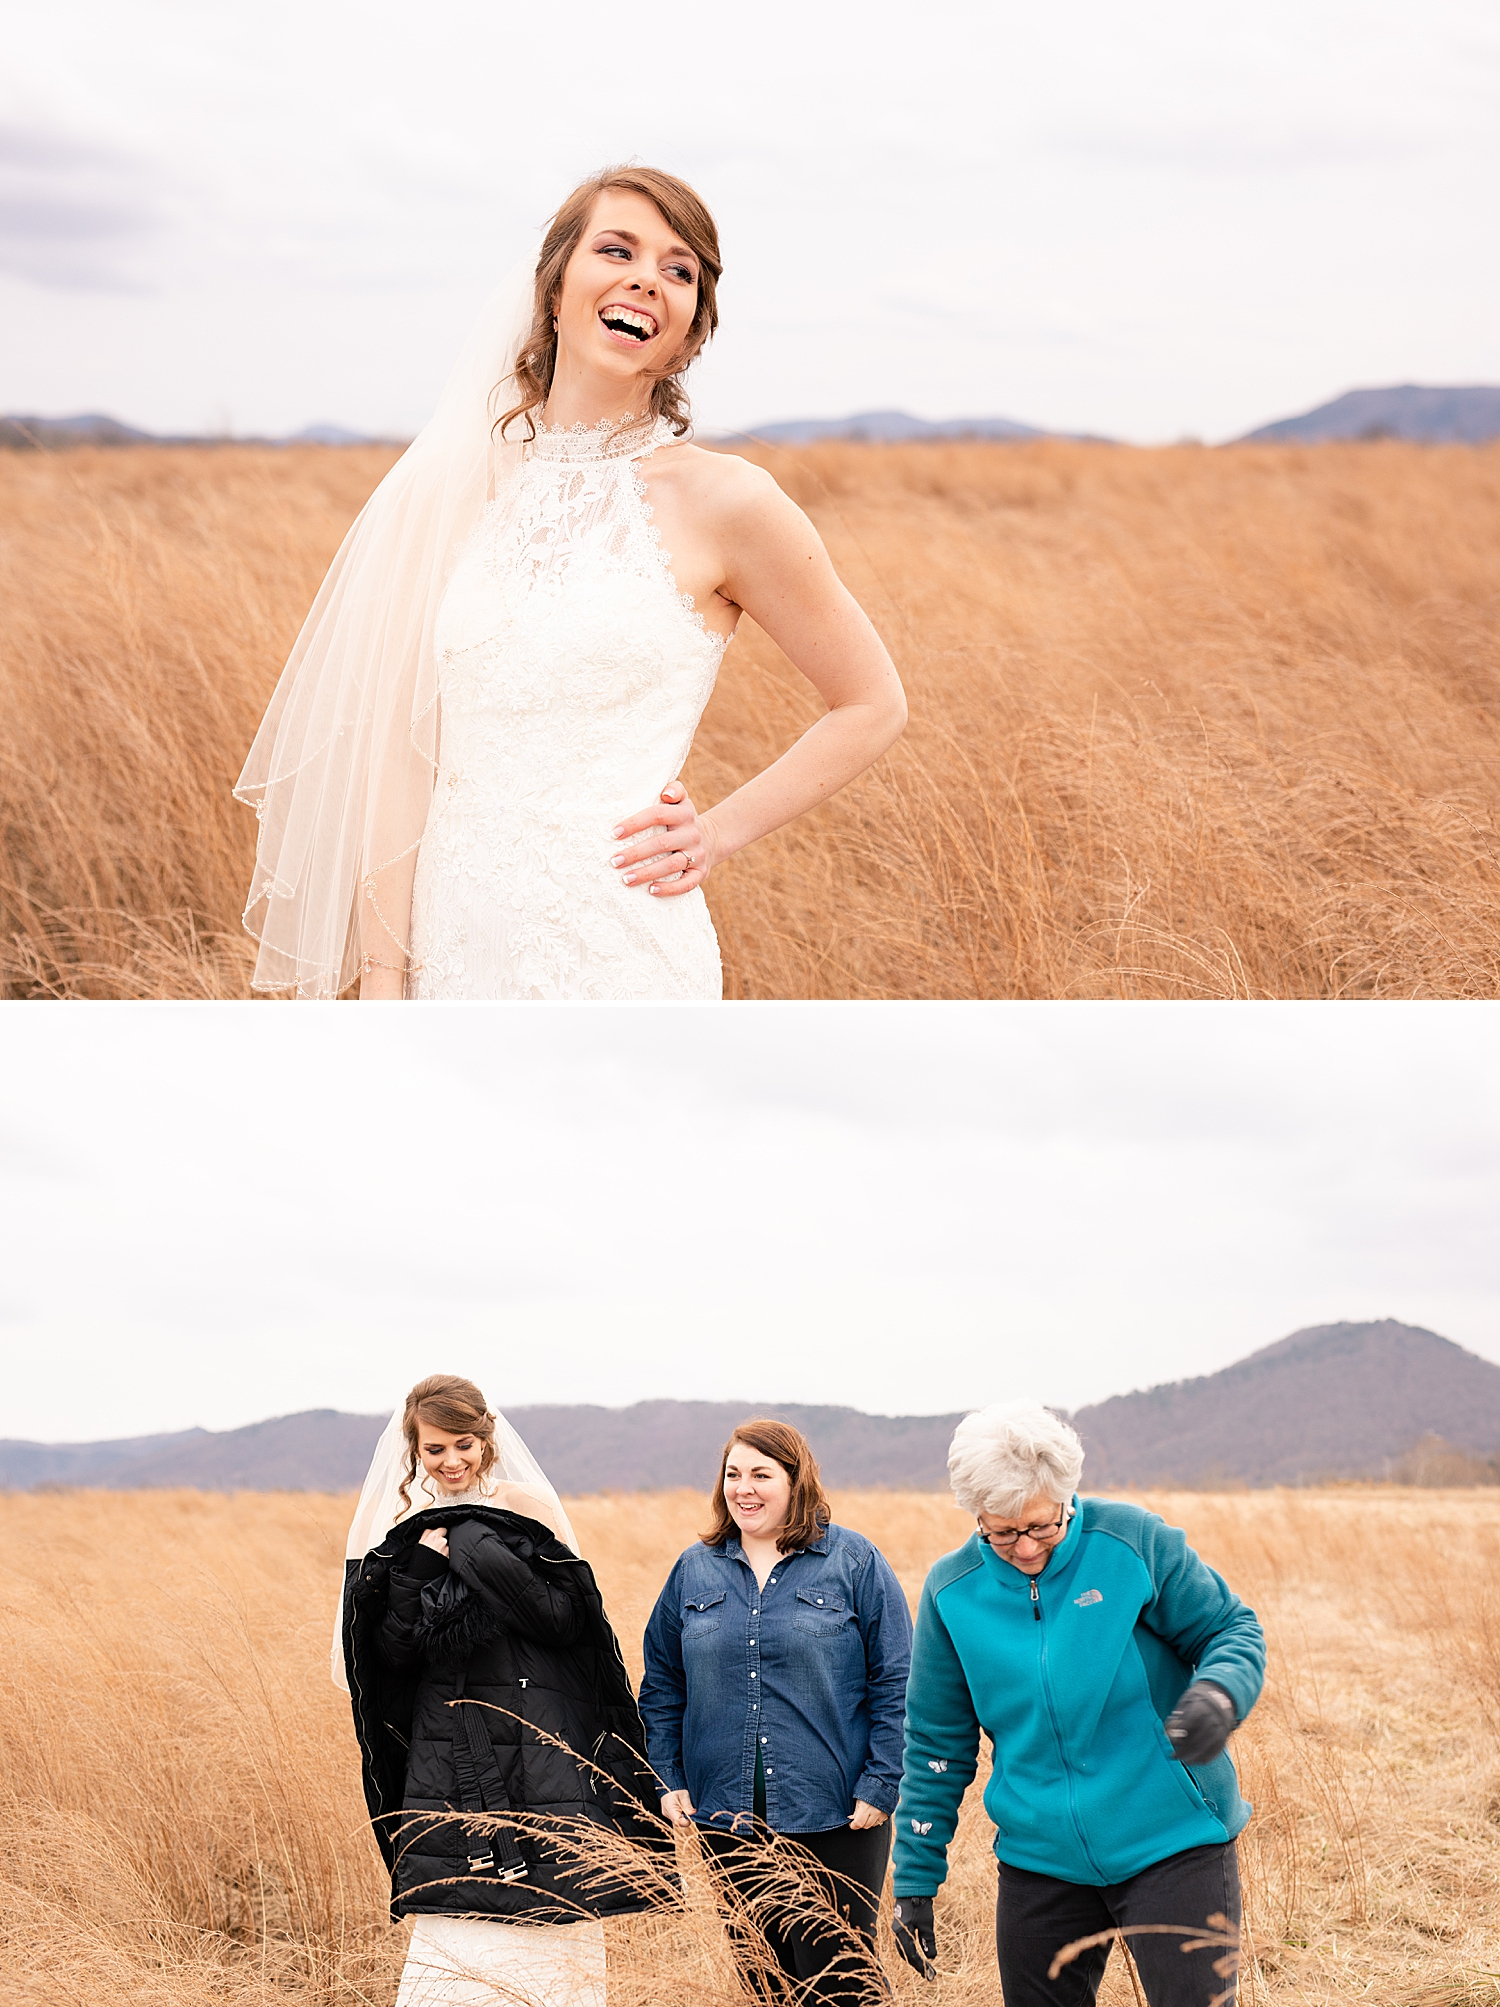 A little behind the scenes shot of Momma Nancy and I warming up the bride! Guys it was freezing but we had a great time!! :)